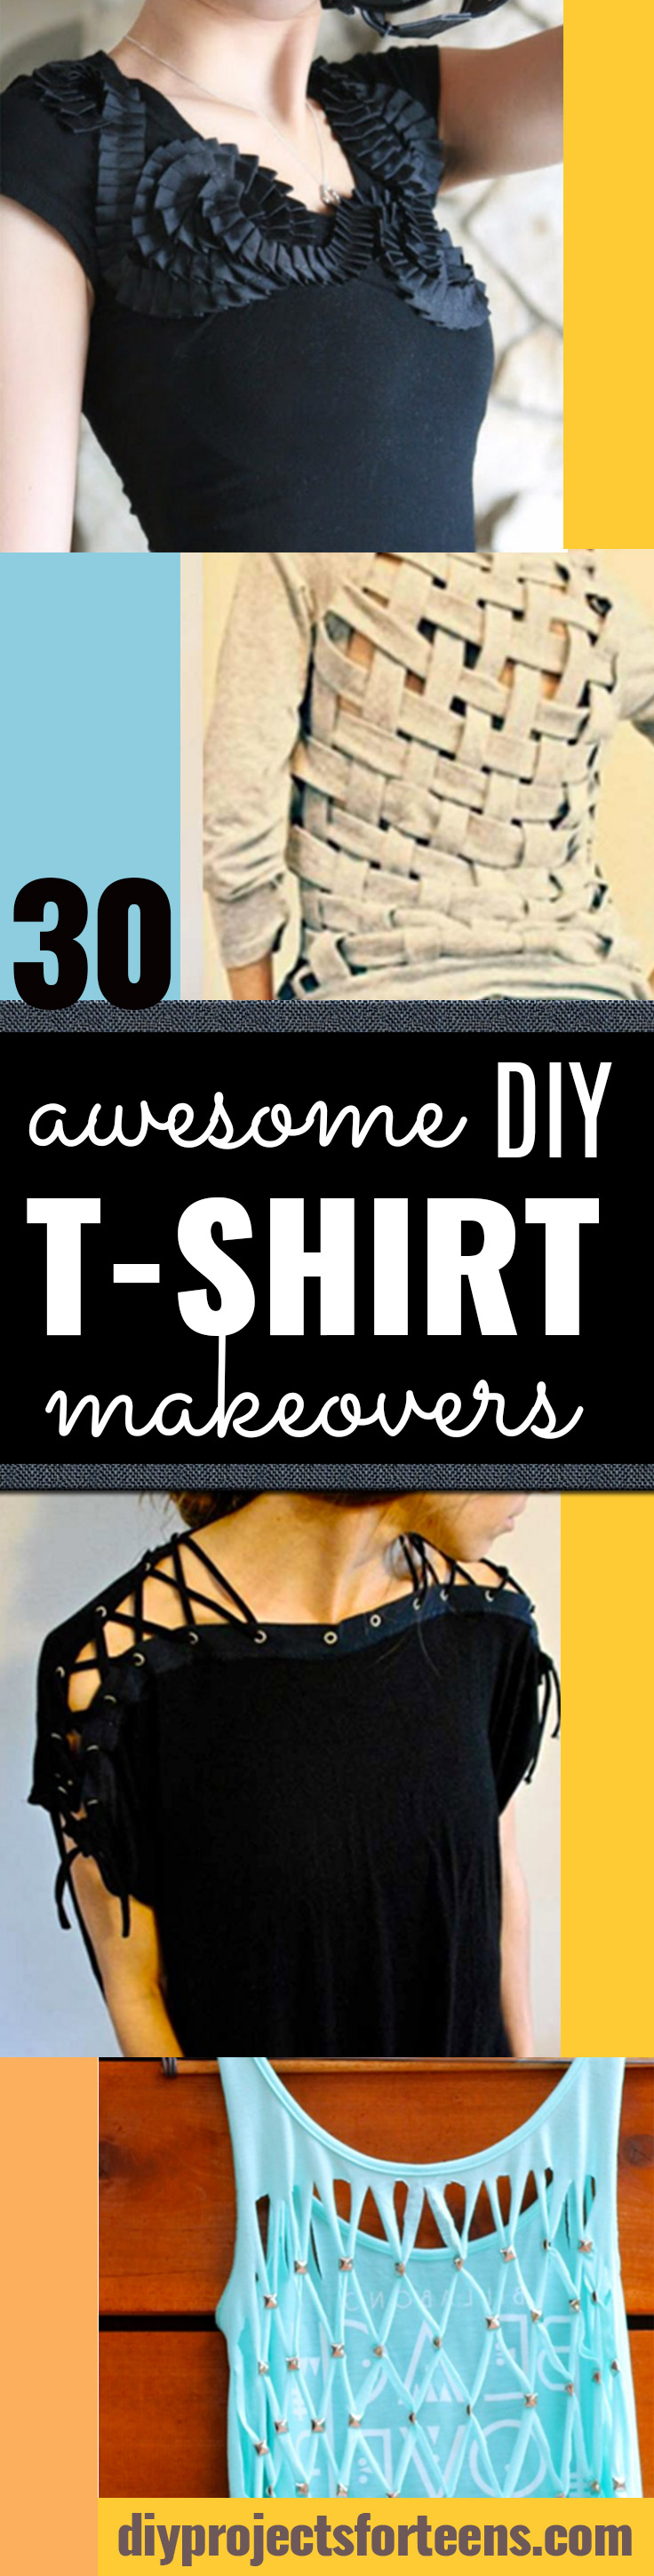 DIY T-Shirt Makeovers - Awesome Way to Upcycle Tees - Cool No Sew Tshirt Cutting Tutorials, Simple Summer Cutouts, How To Make Halter Tops and T-Shirt Dresses. Easy Tutorials and Instructions for Teens and Adults #tshircrafts #teenclothes #teenfashion #teendiy #teencrafts